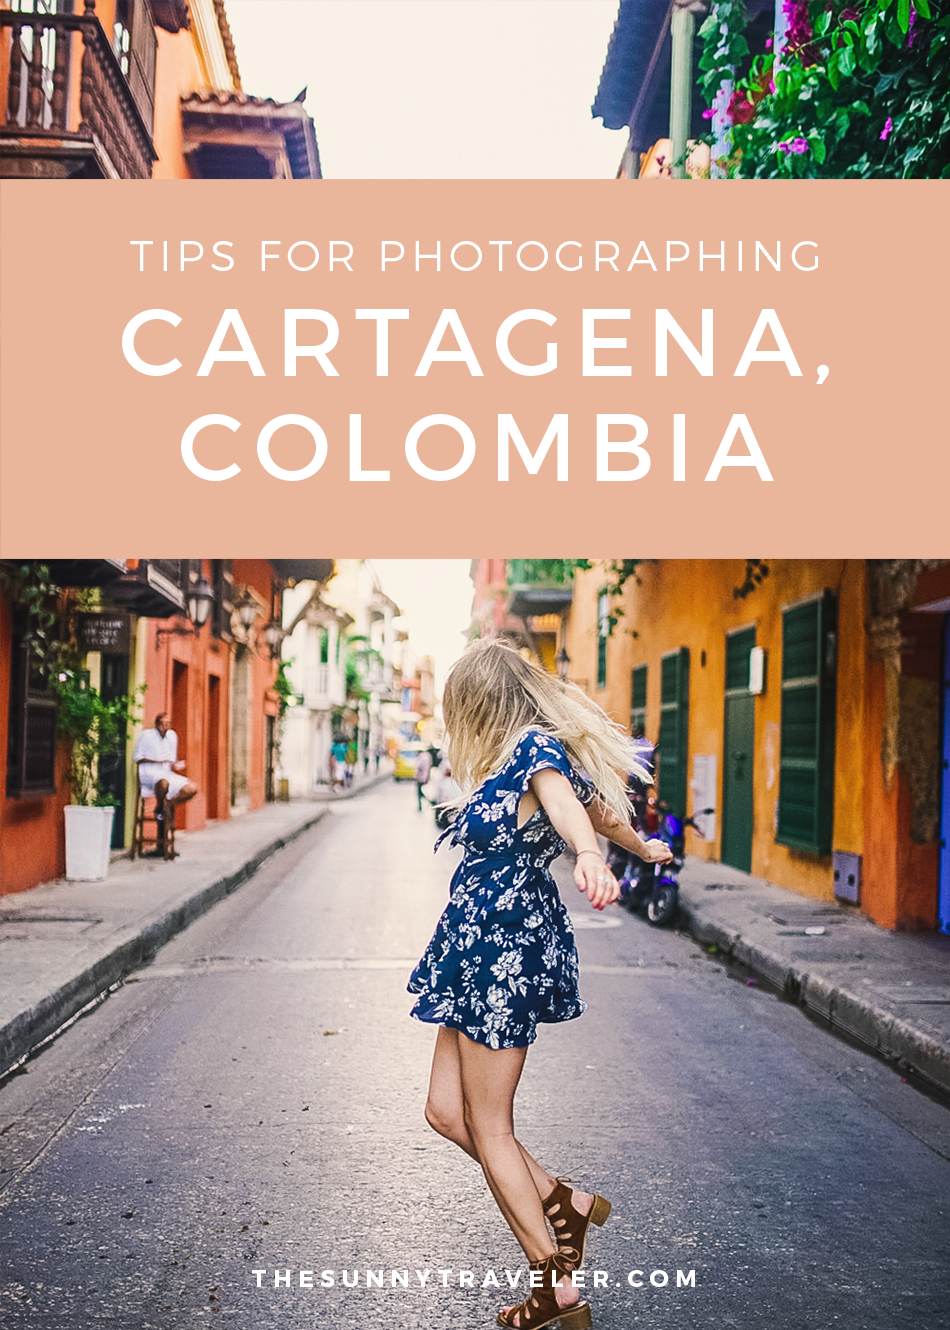 Tips for Photographing Cartagena, Colombia on www.thesunnytraveler.com